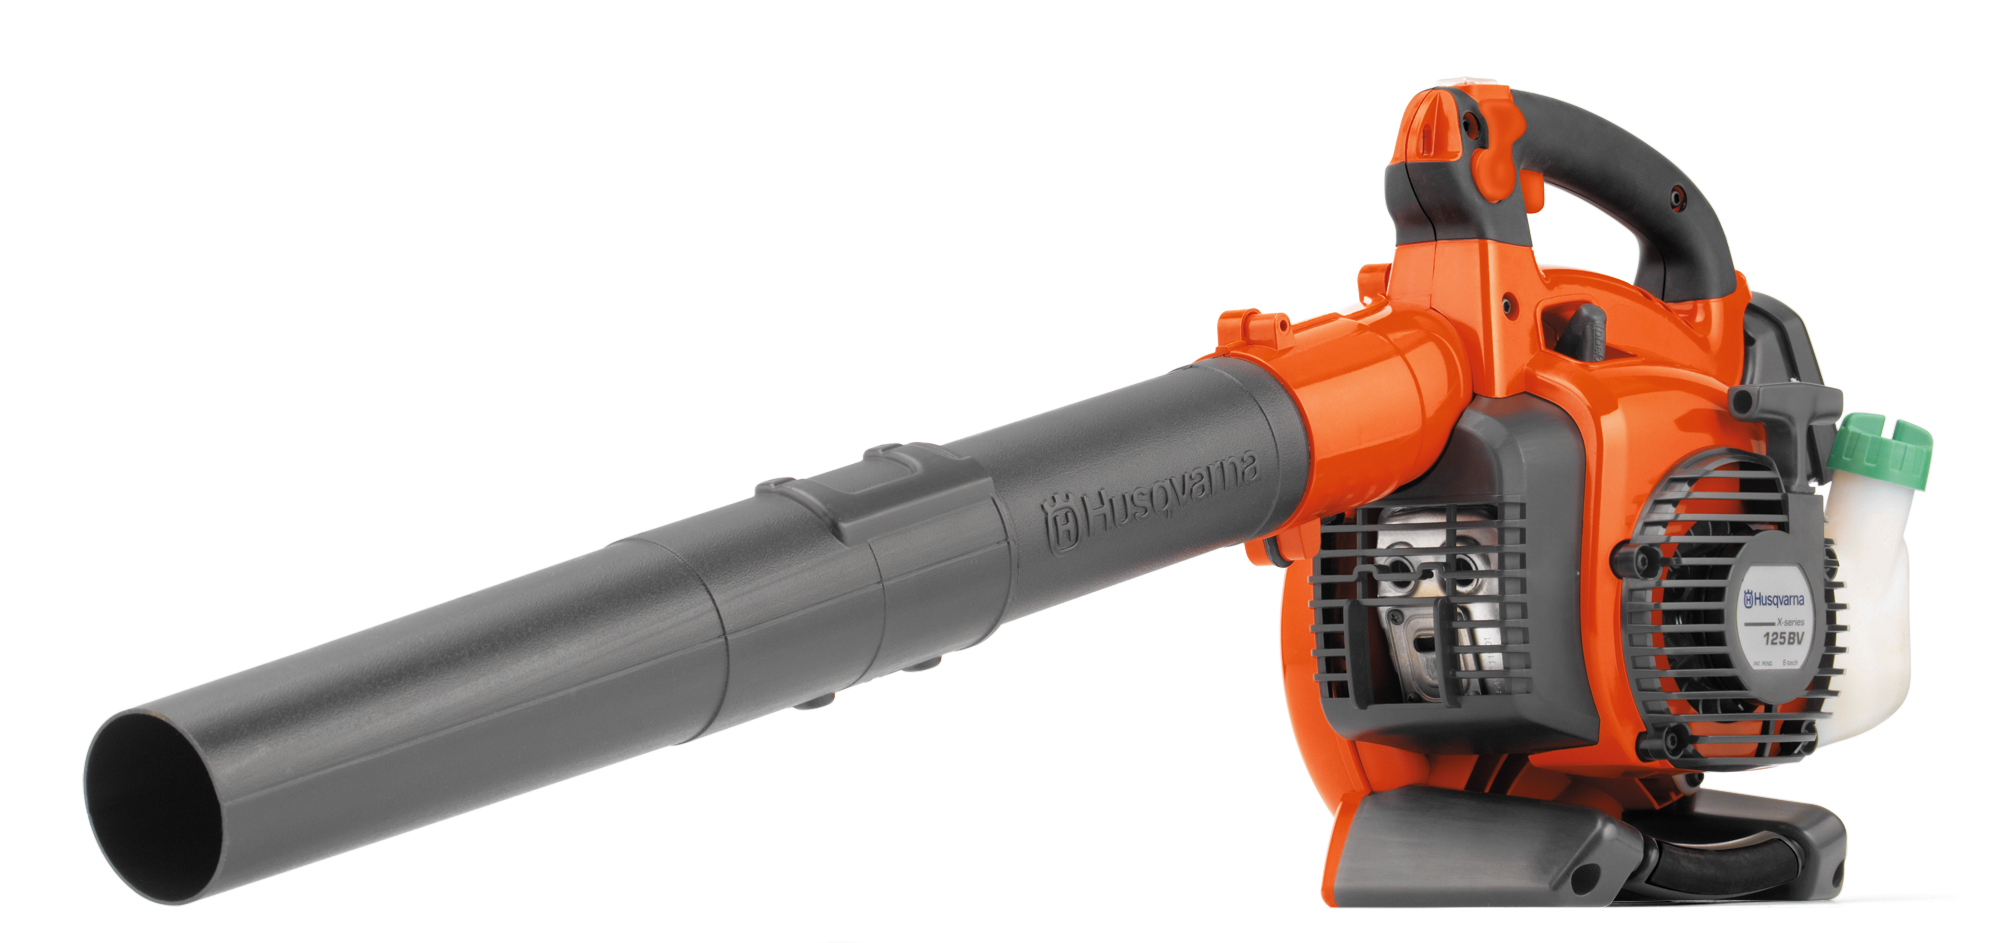 Image for 125BVX Gas Handheld Leaf Blower-Vacuum                                                                                           from HusqvarnaB2C